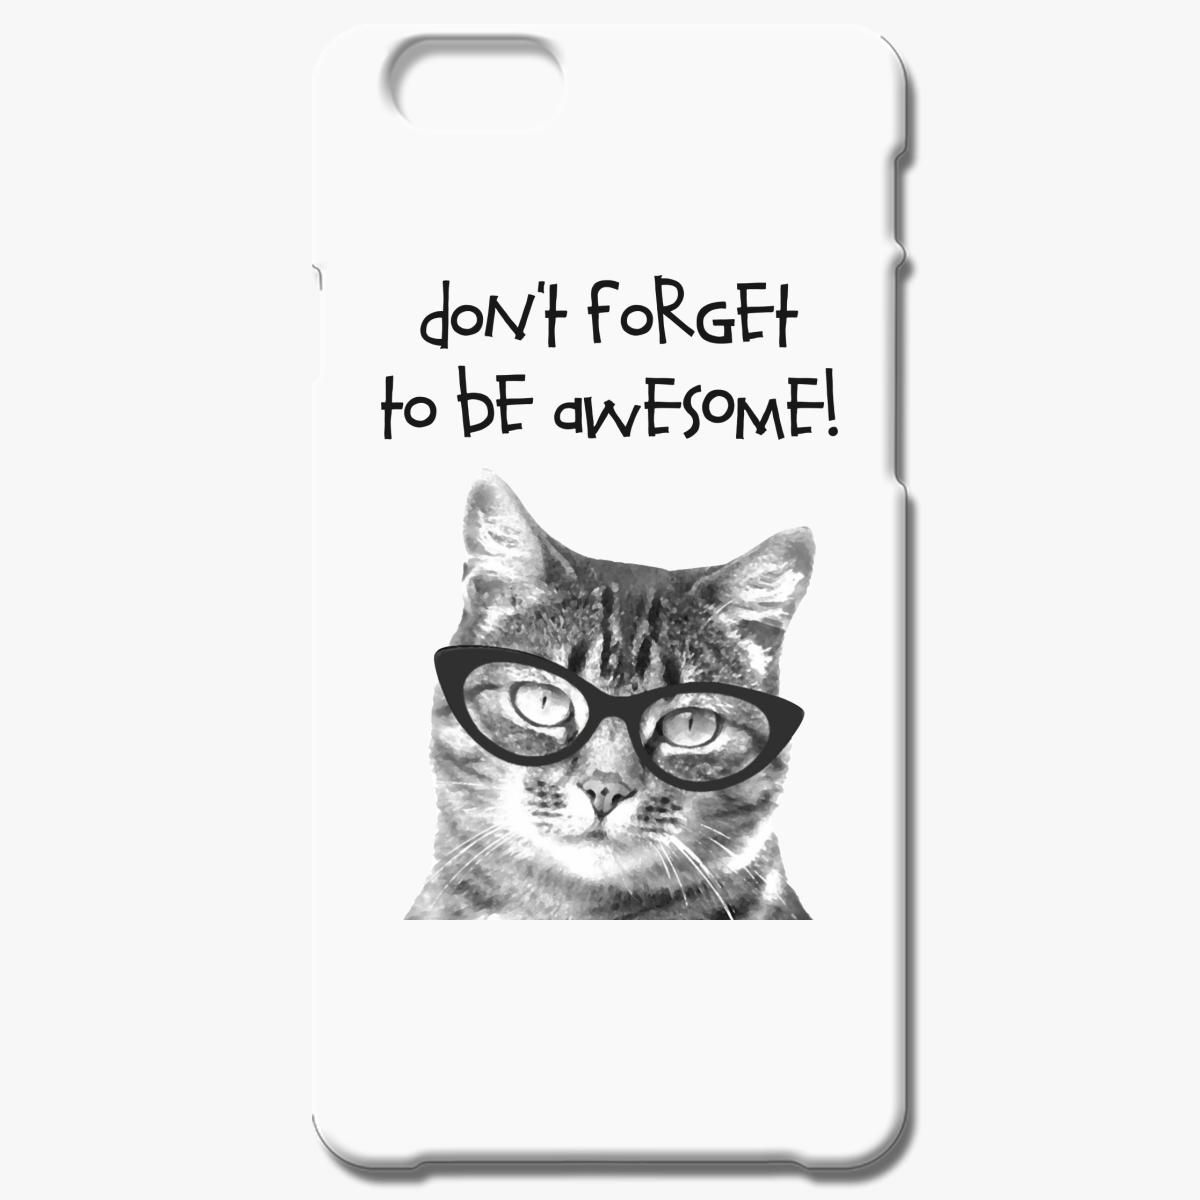 Awesome Cat Black Iphone 7 Plus Case